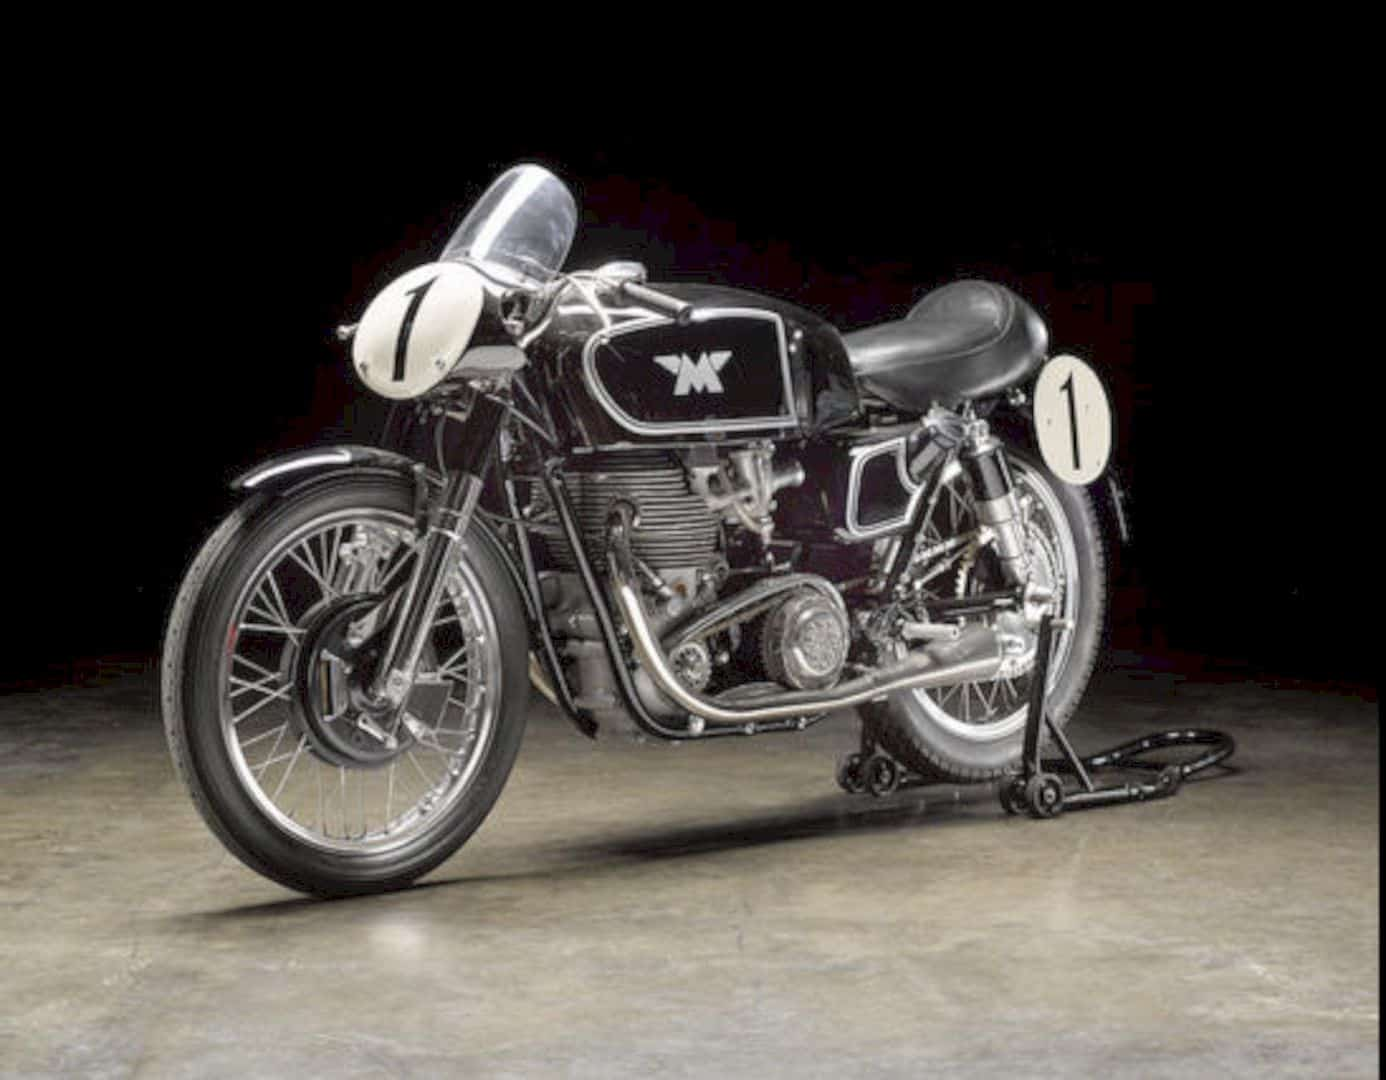 The 1955 Matchless 498cc G45 Motorcycle 2